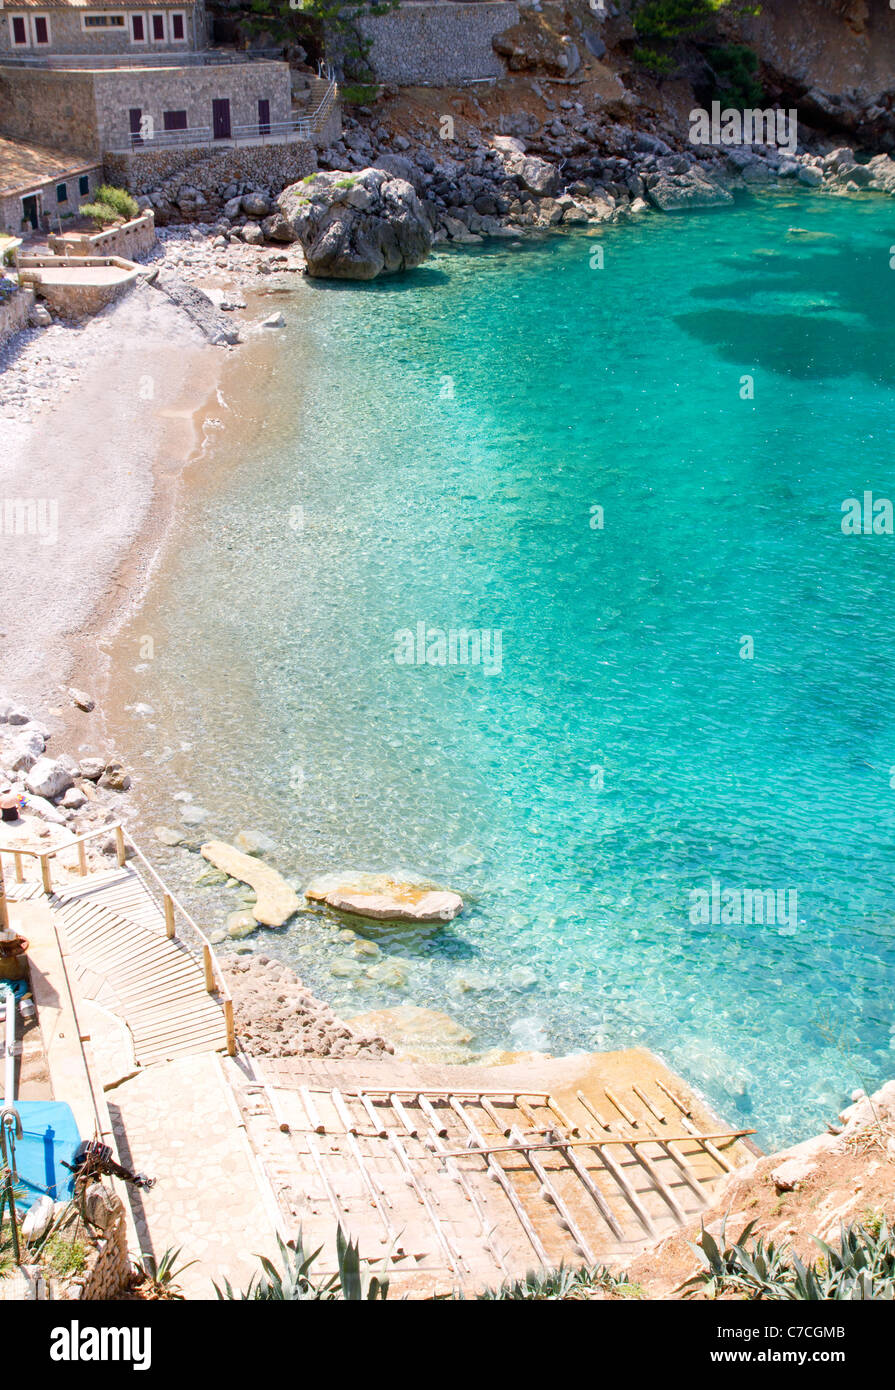 Sa Calobra beach from high point of view in Escorca Mallorca in Balearic islands - Stock Image